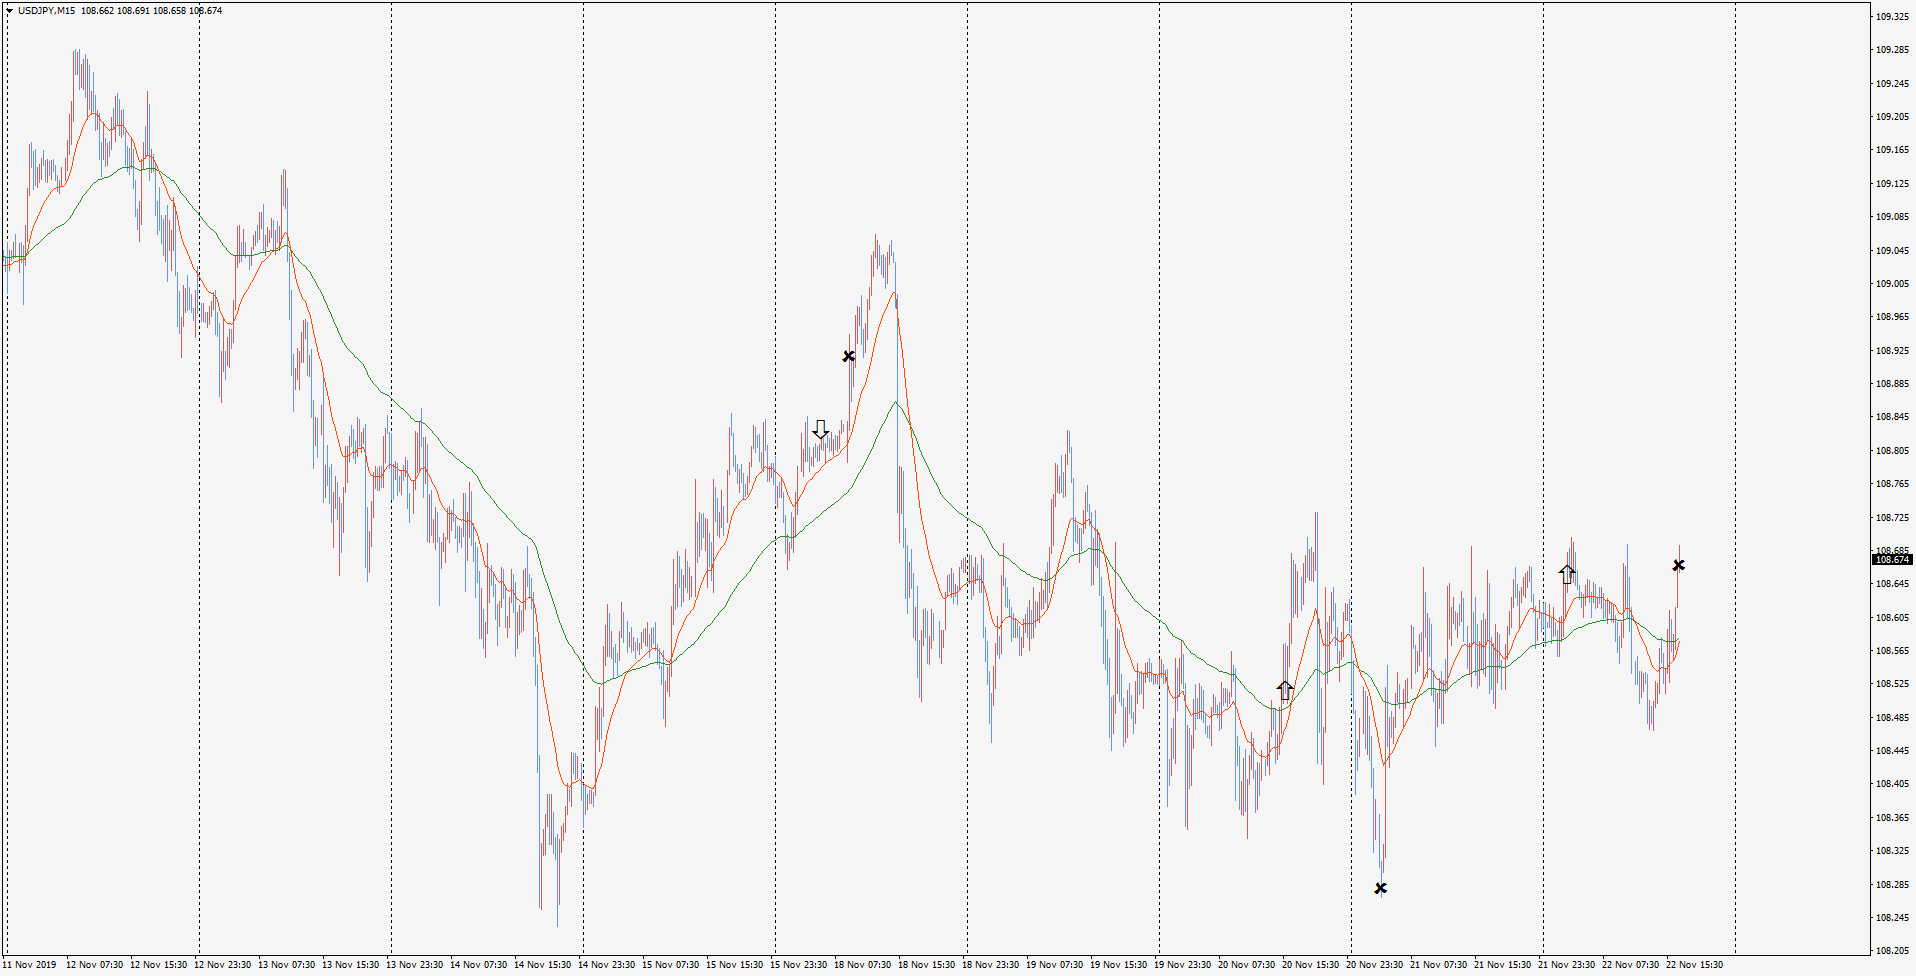 19-11-23-usdjpy-m15-tradexfin-limited.png